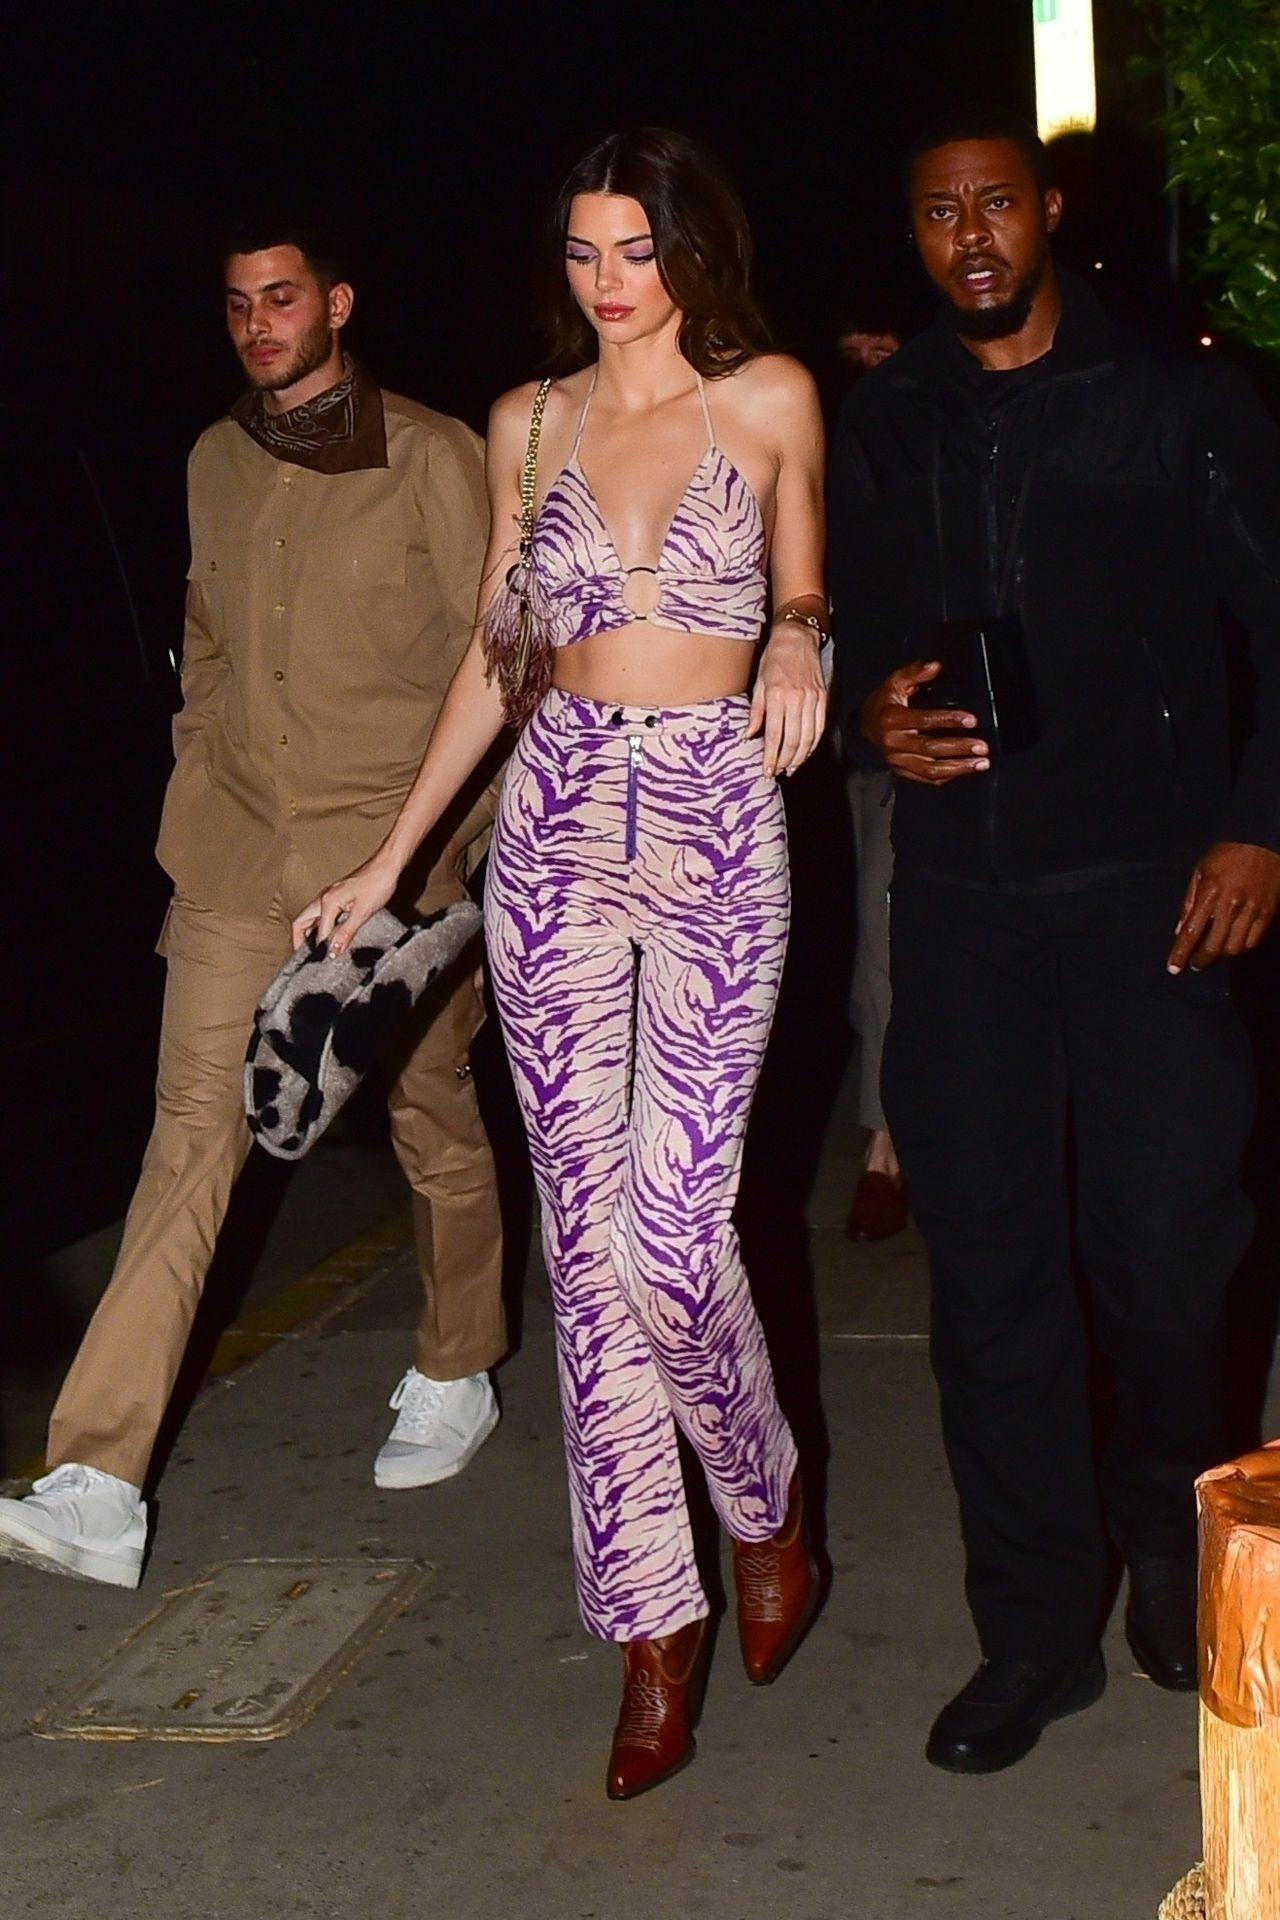 Kendall Jenner Gets Camera Shy While Leaving A Party At Shorebar 0045